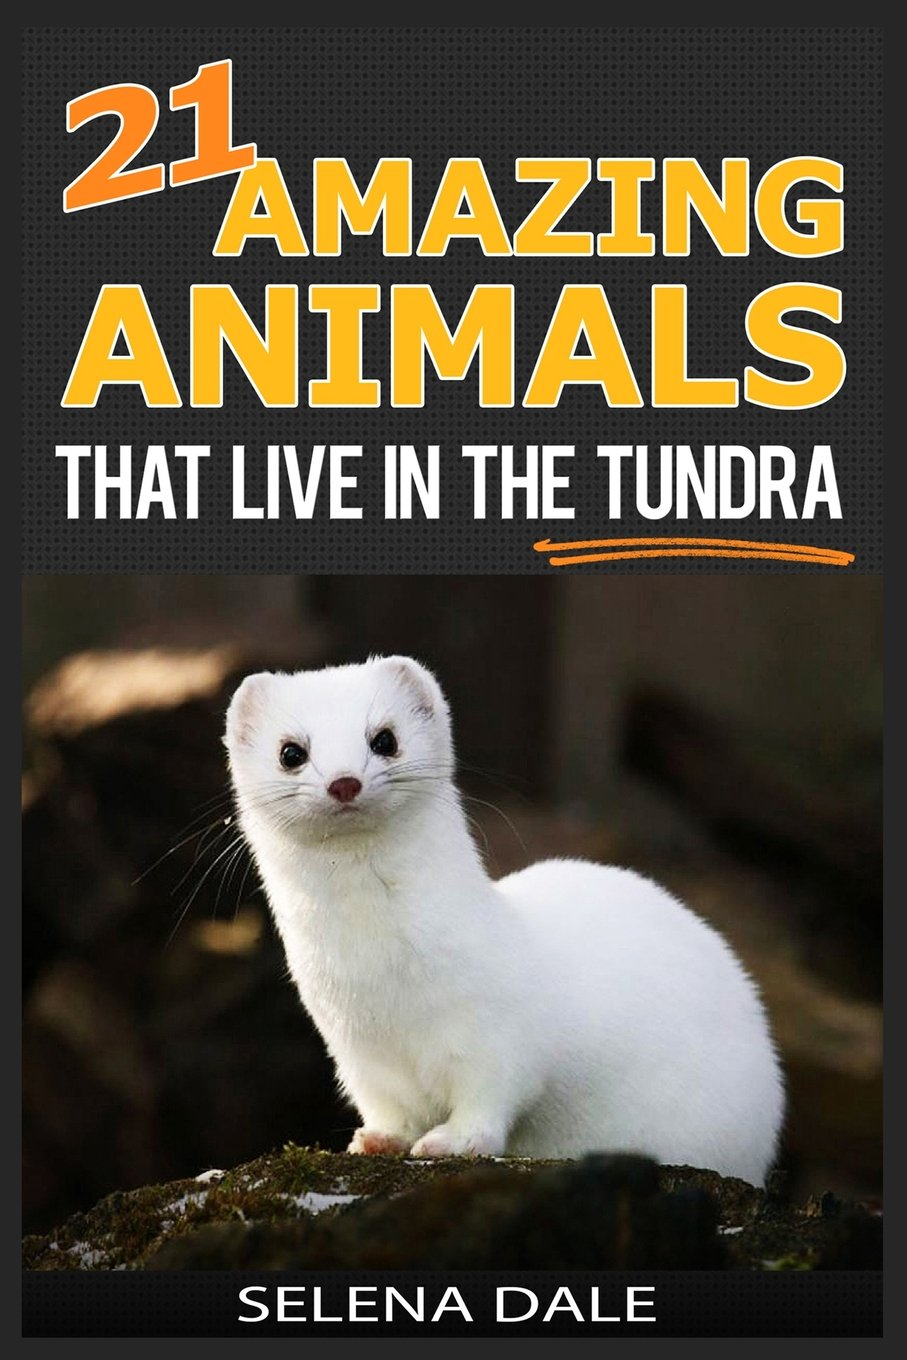 Download 21 Amazing Animals That Live In The Tundra: Extraordinary Animal Photos & Facinating Fun Facts For Kids (Weird & Wonderful Animals) (Volume 5) ebook